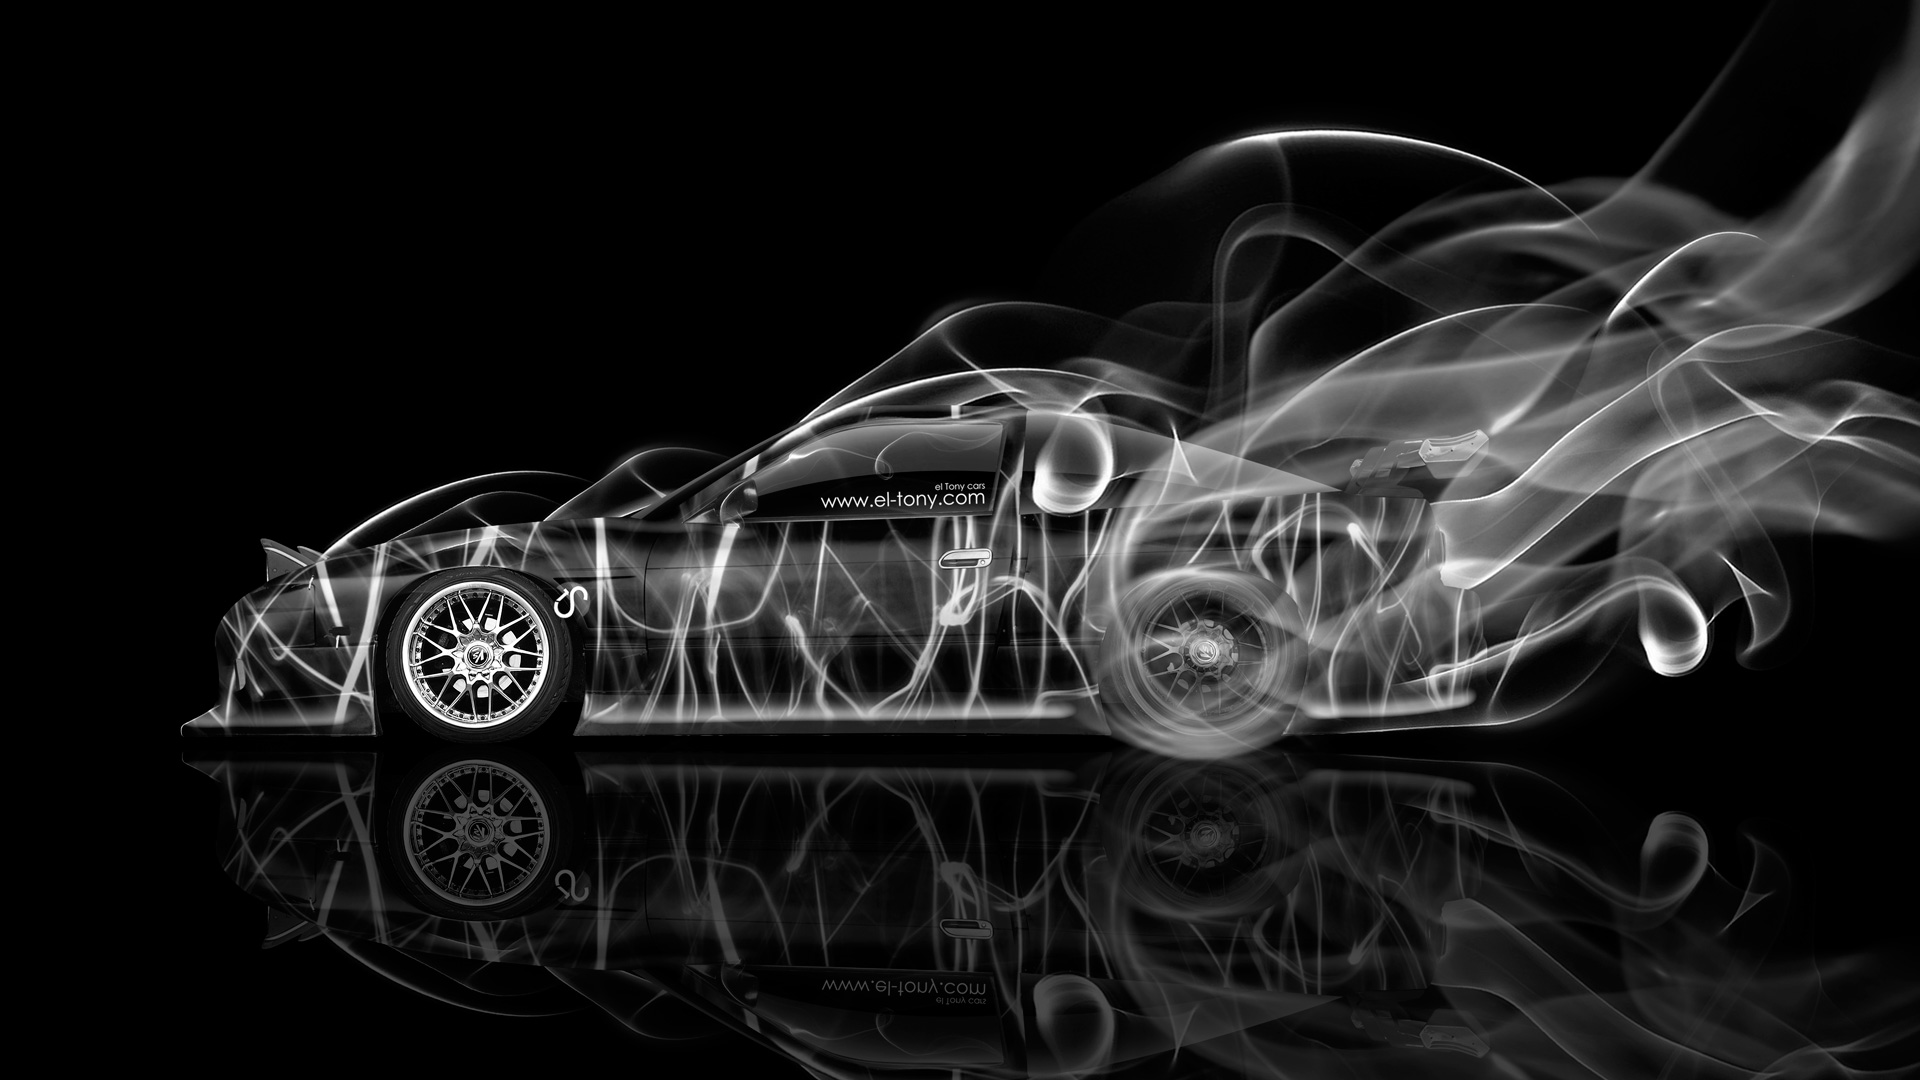 Nissan Sx Jdm Side Drift Smoke Car Photoshop Hd Wallpapers Design By Tony Kokhan Www El Tony Com